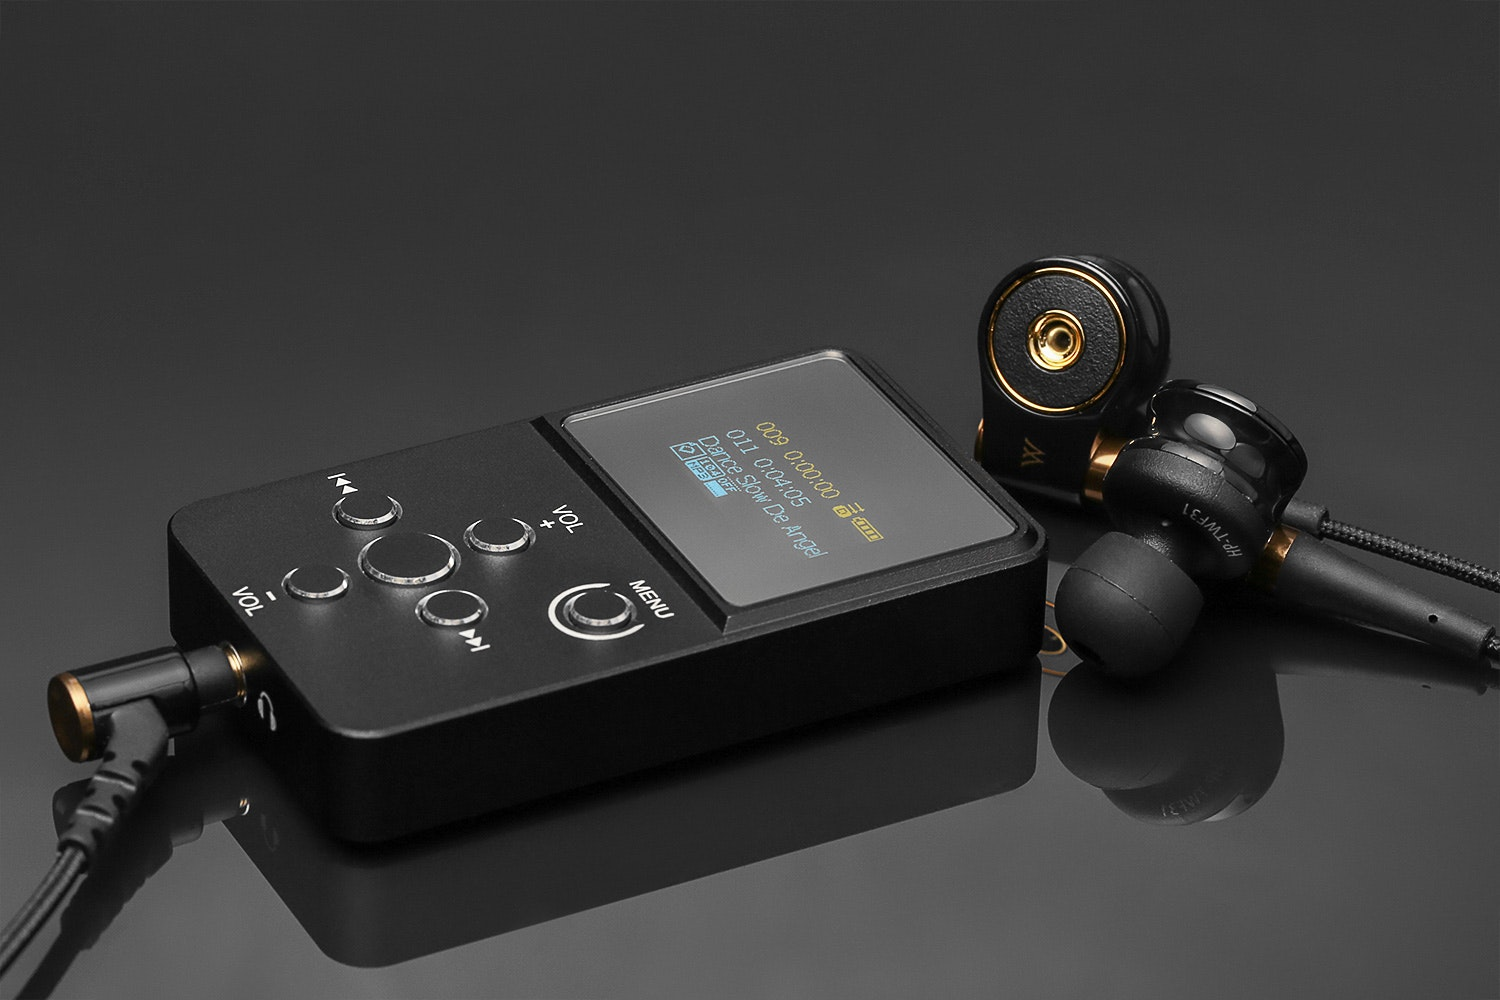 XDuoo X2 Digital Audio Player